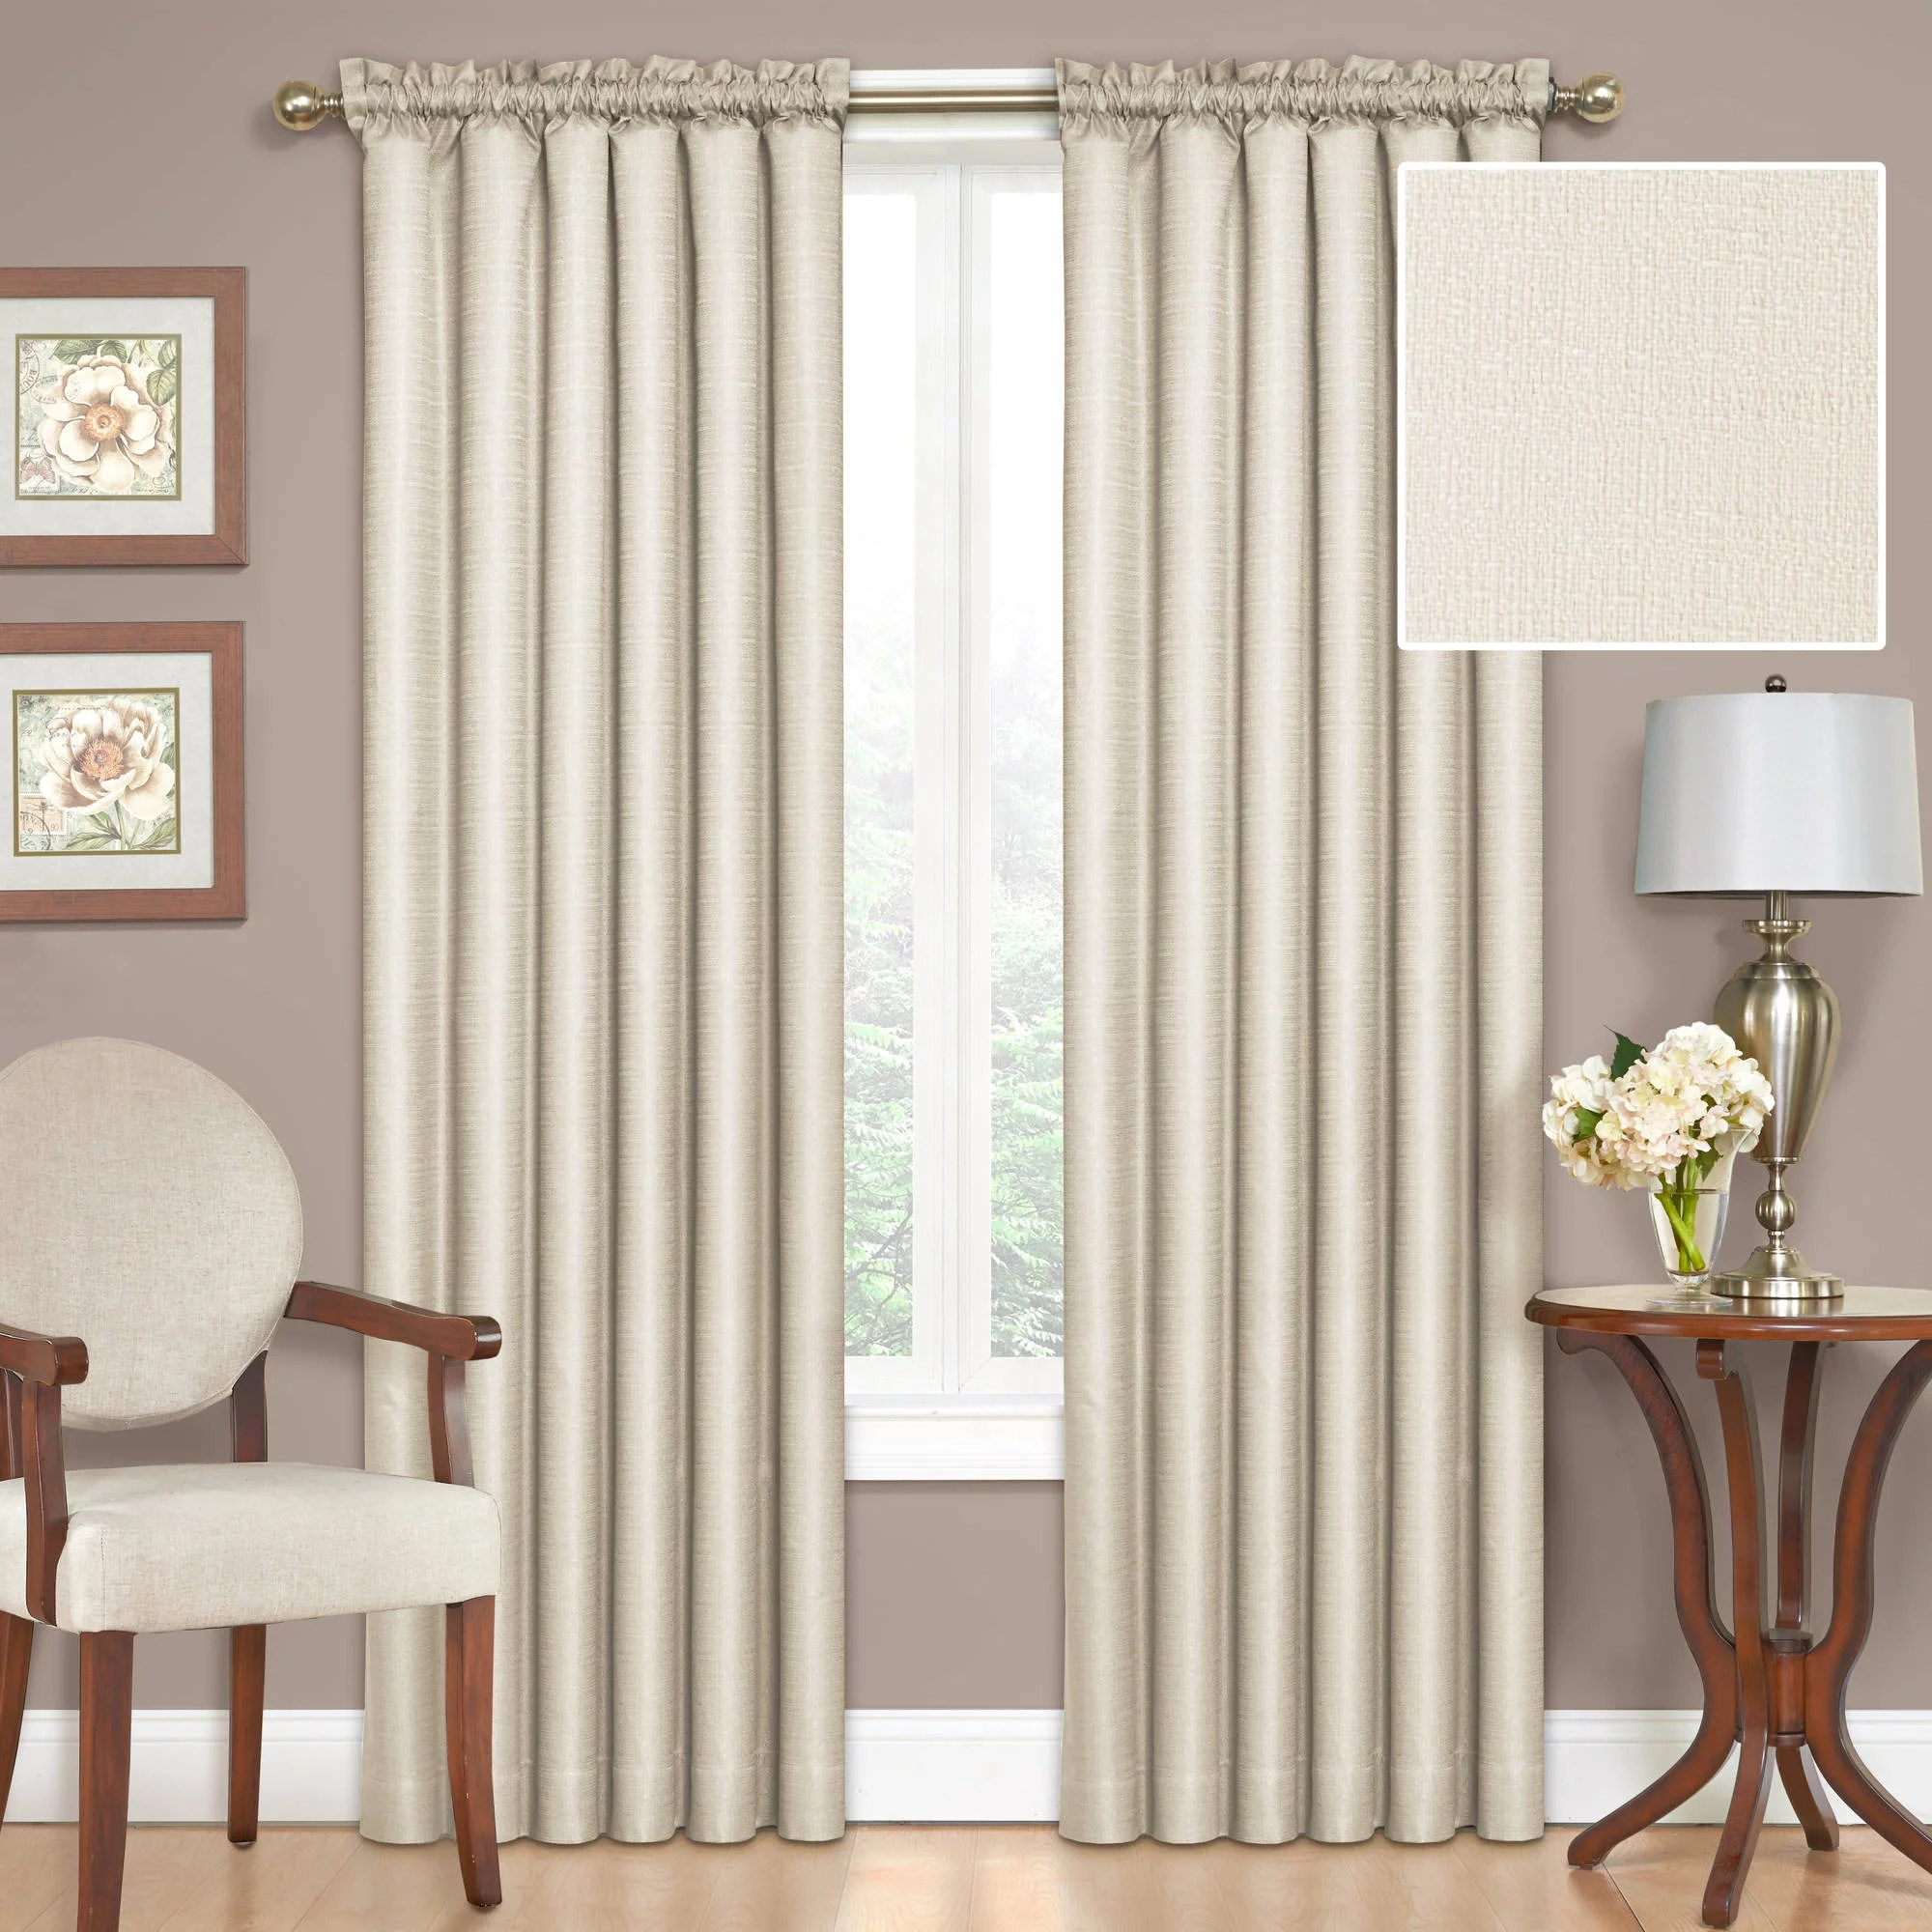 Curtain Insulation Fabric Eclipse Samara Room Darkening Energy Efficient Thermal Curtain Panel